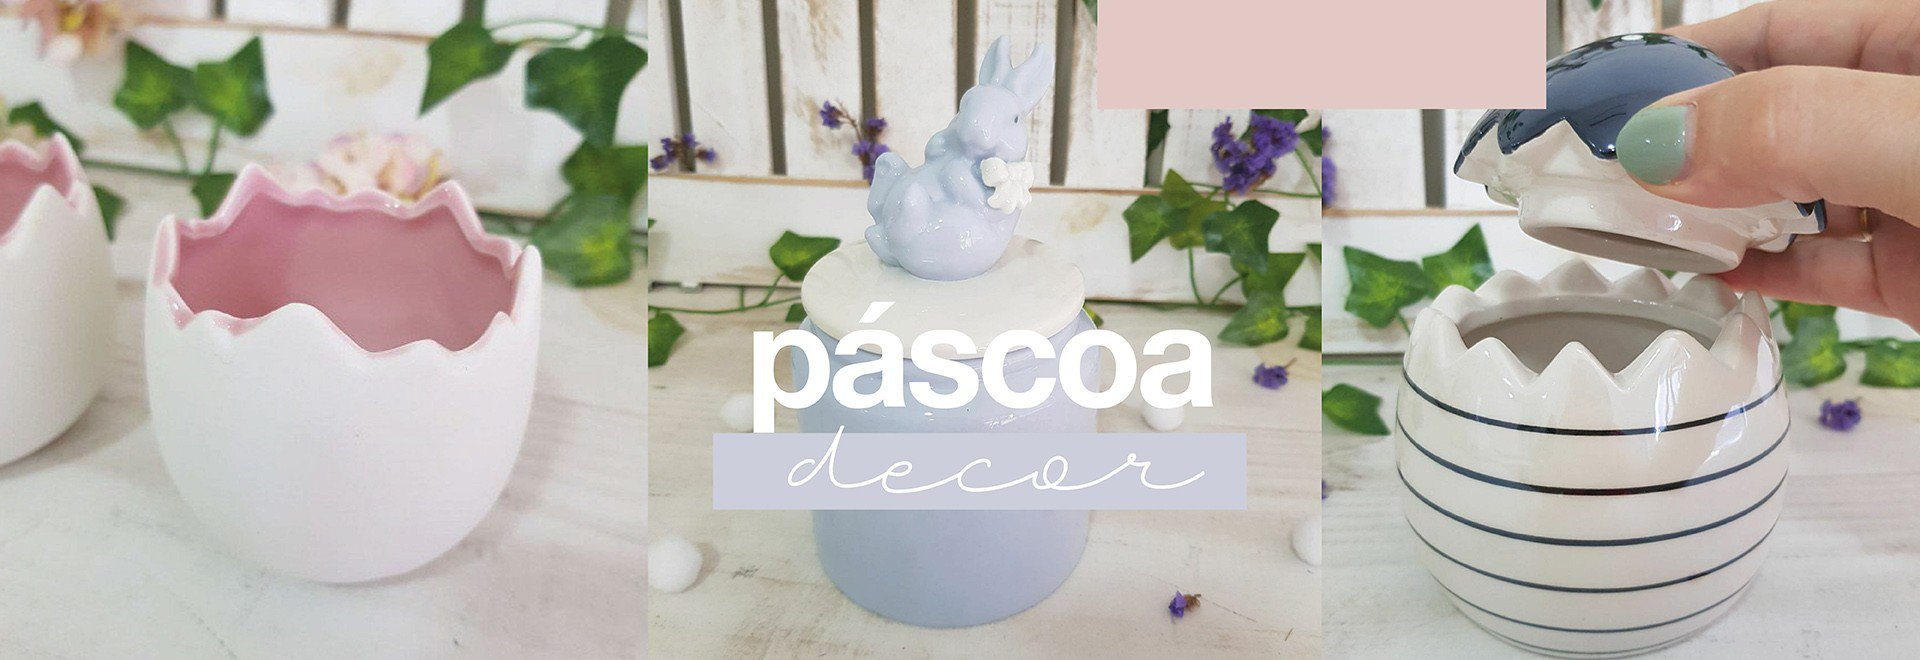 pascoa decor desktop